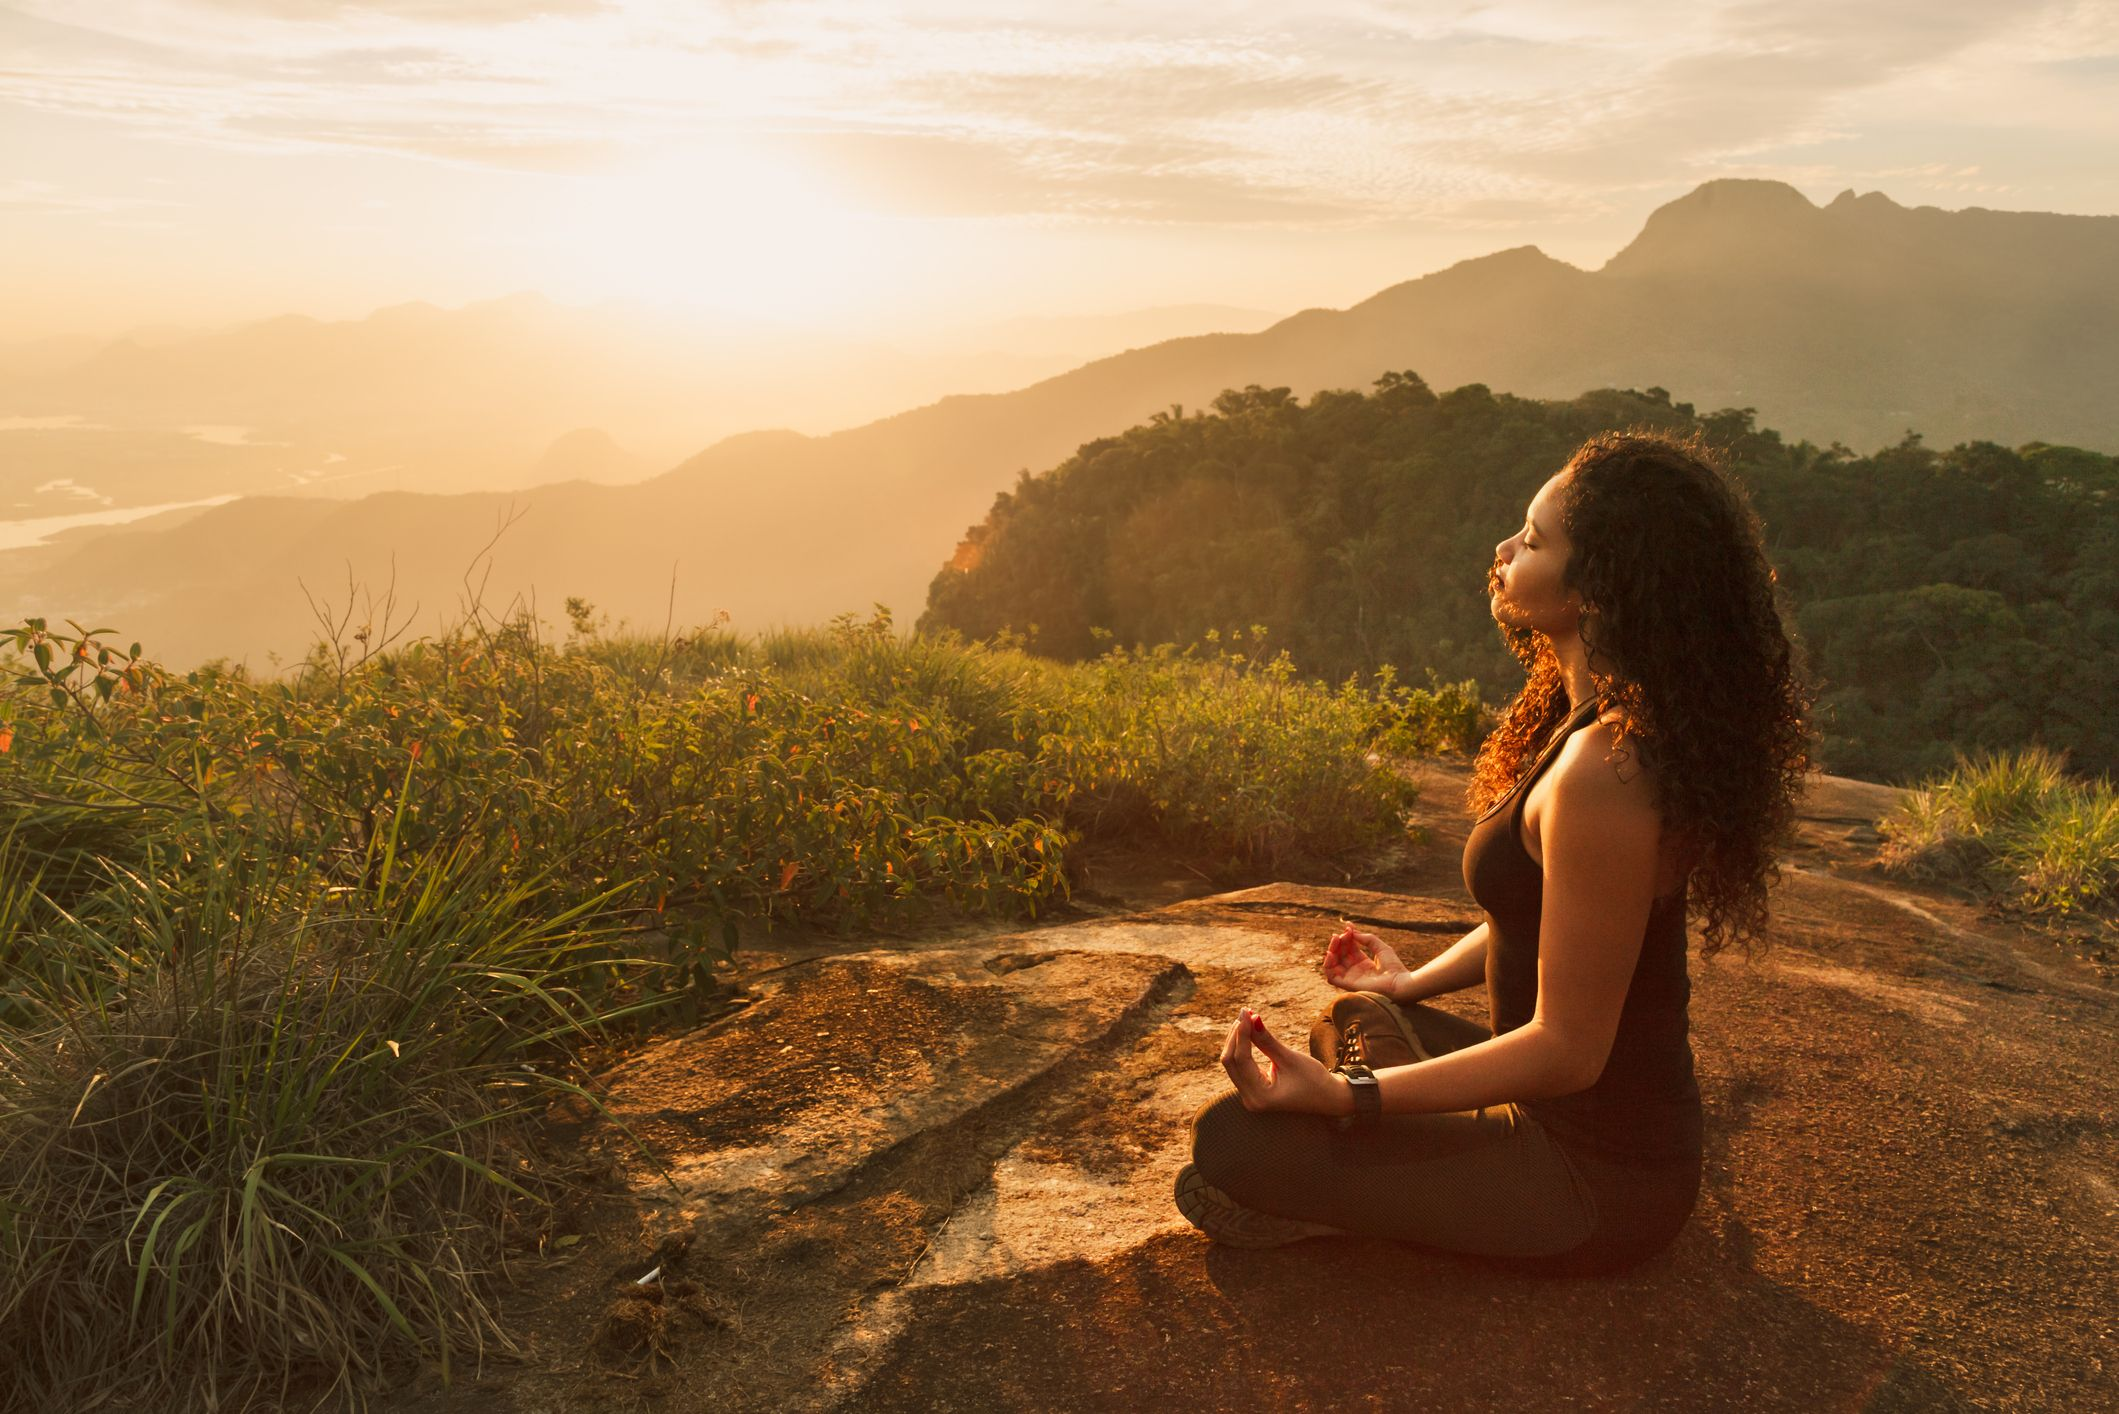 10 Uplifting Self-Care Quotes That Will Help You Survive Your Hardest Days